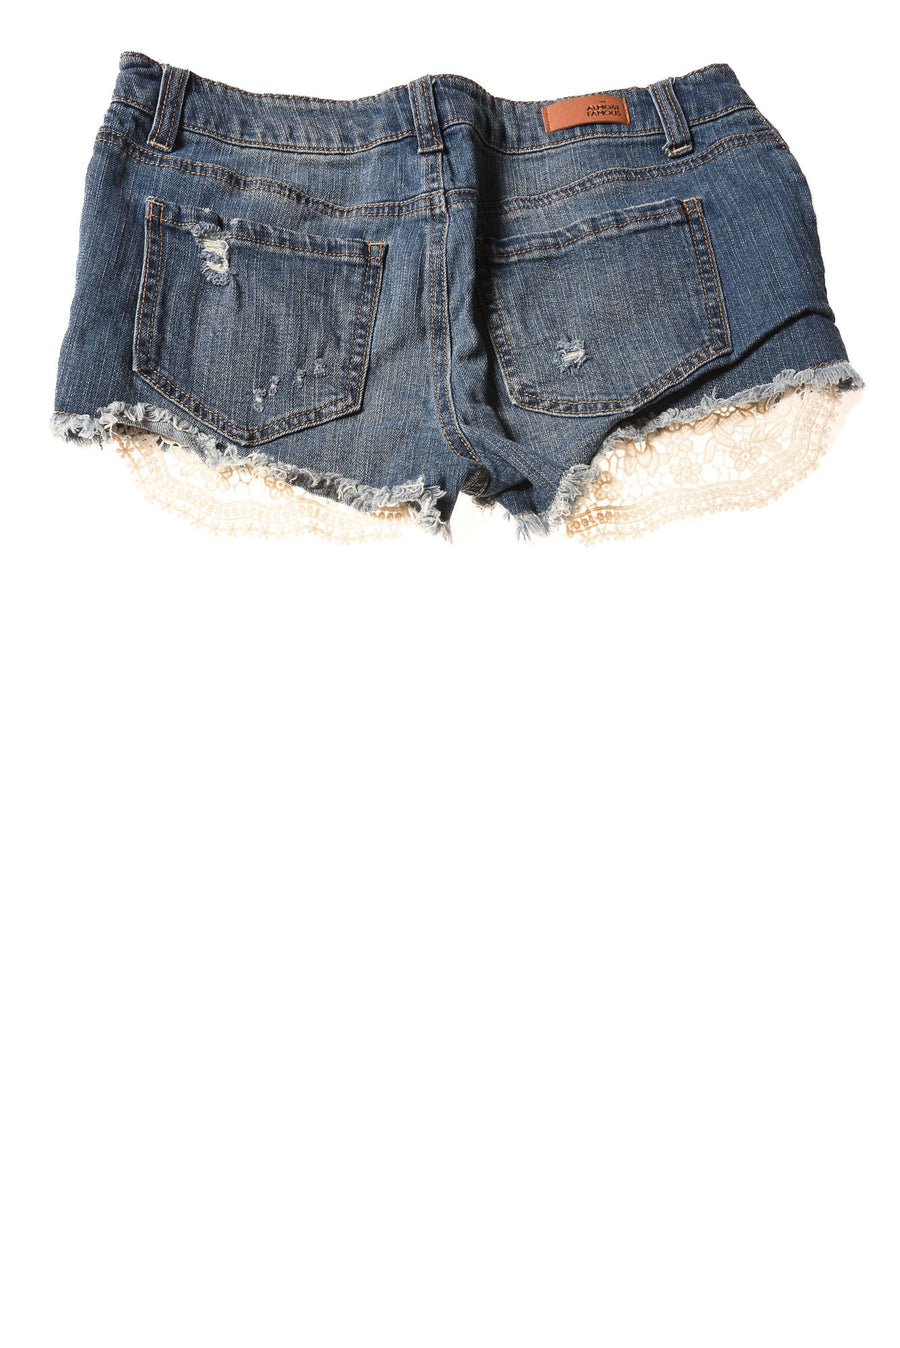 USED Almost Famous Women's Shorts 7 Blue